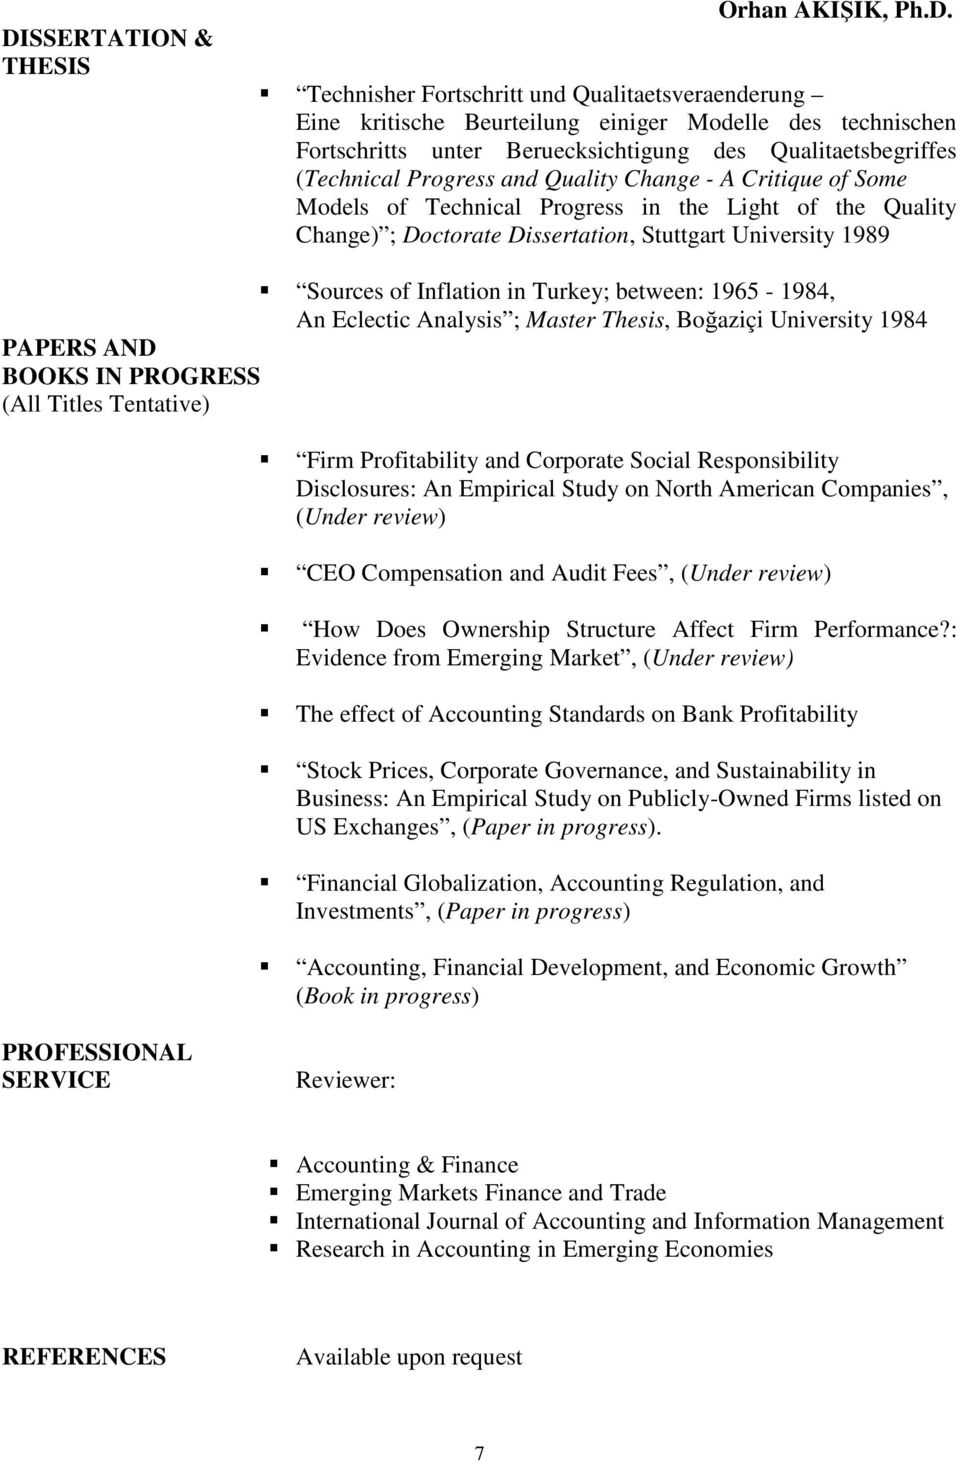 Sources of Inflation in Turkey; between: 1965-1984, An Eclectic Analysis ; Master Thesis, Boğaziçi University 1984 PAPERS AND BOOKS IN PROGRESS (All Titles Tentative) Firm Profitability and Corporate